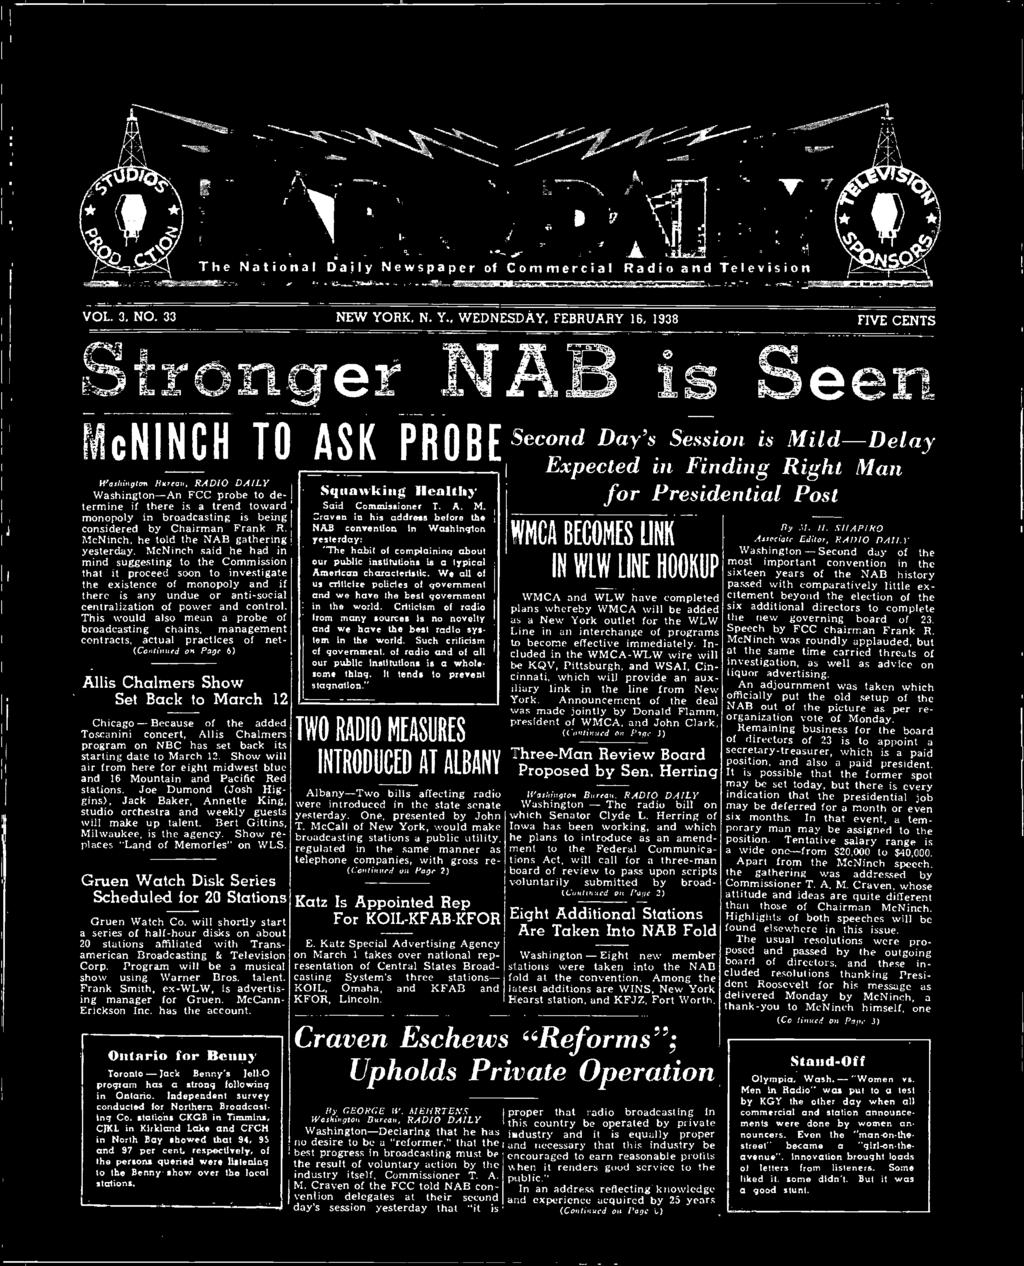 , WEDNESDAY, FEBRUARY 16, 1938 FIVE CENTS Stronger NAB is Seen McNINCH TO ASK PROBE Washington Hlt,(00, Washington-An FCC probe to determine if there is a trend toward ' monopoly in broadcasting is